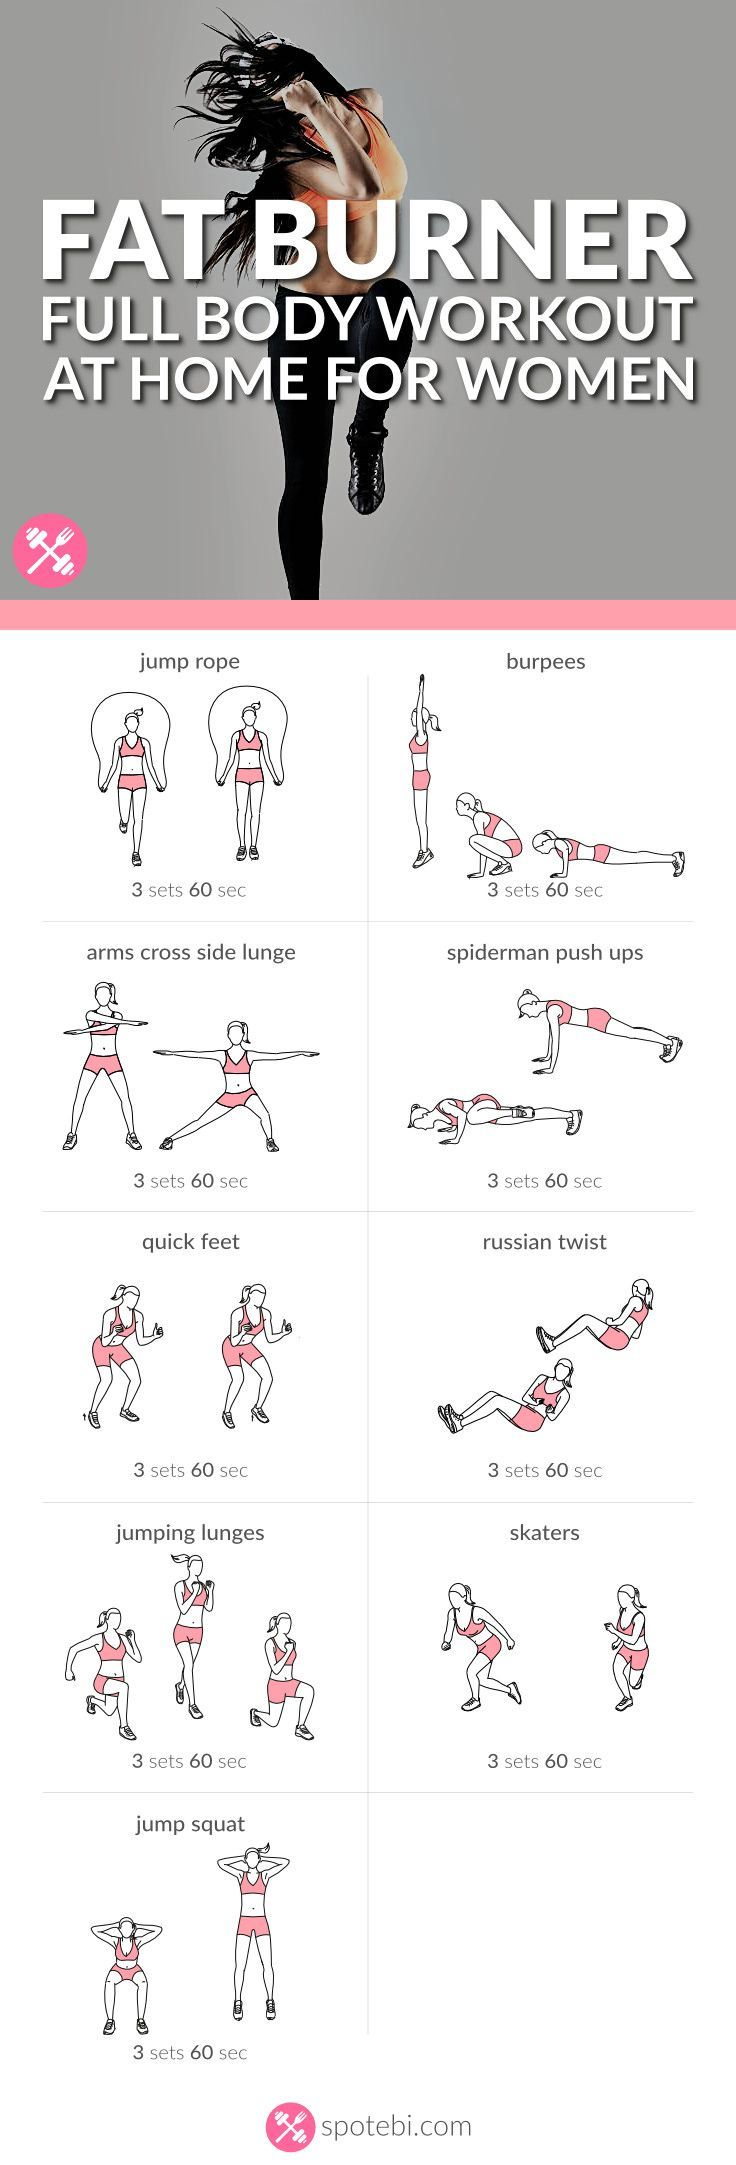 complete workout plan to lose weight